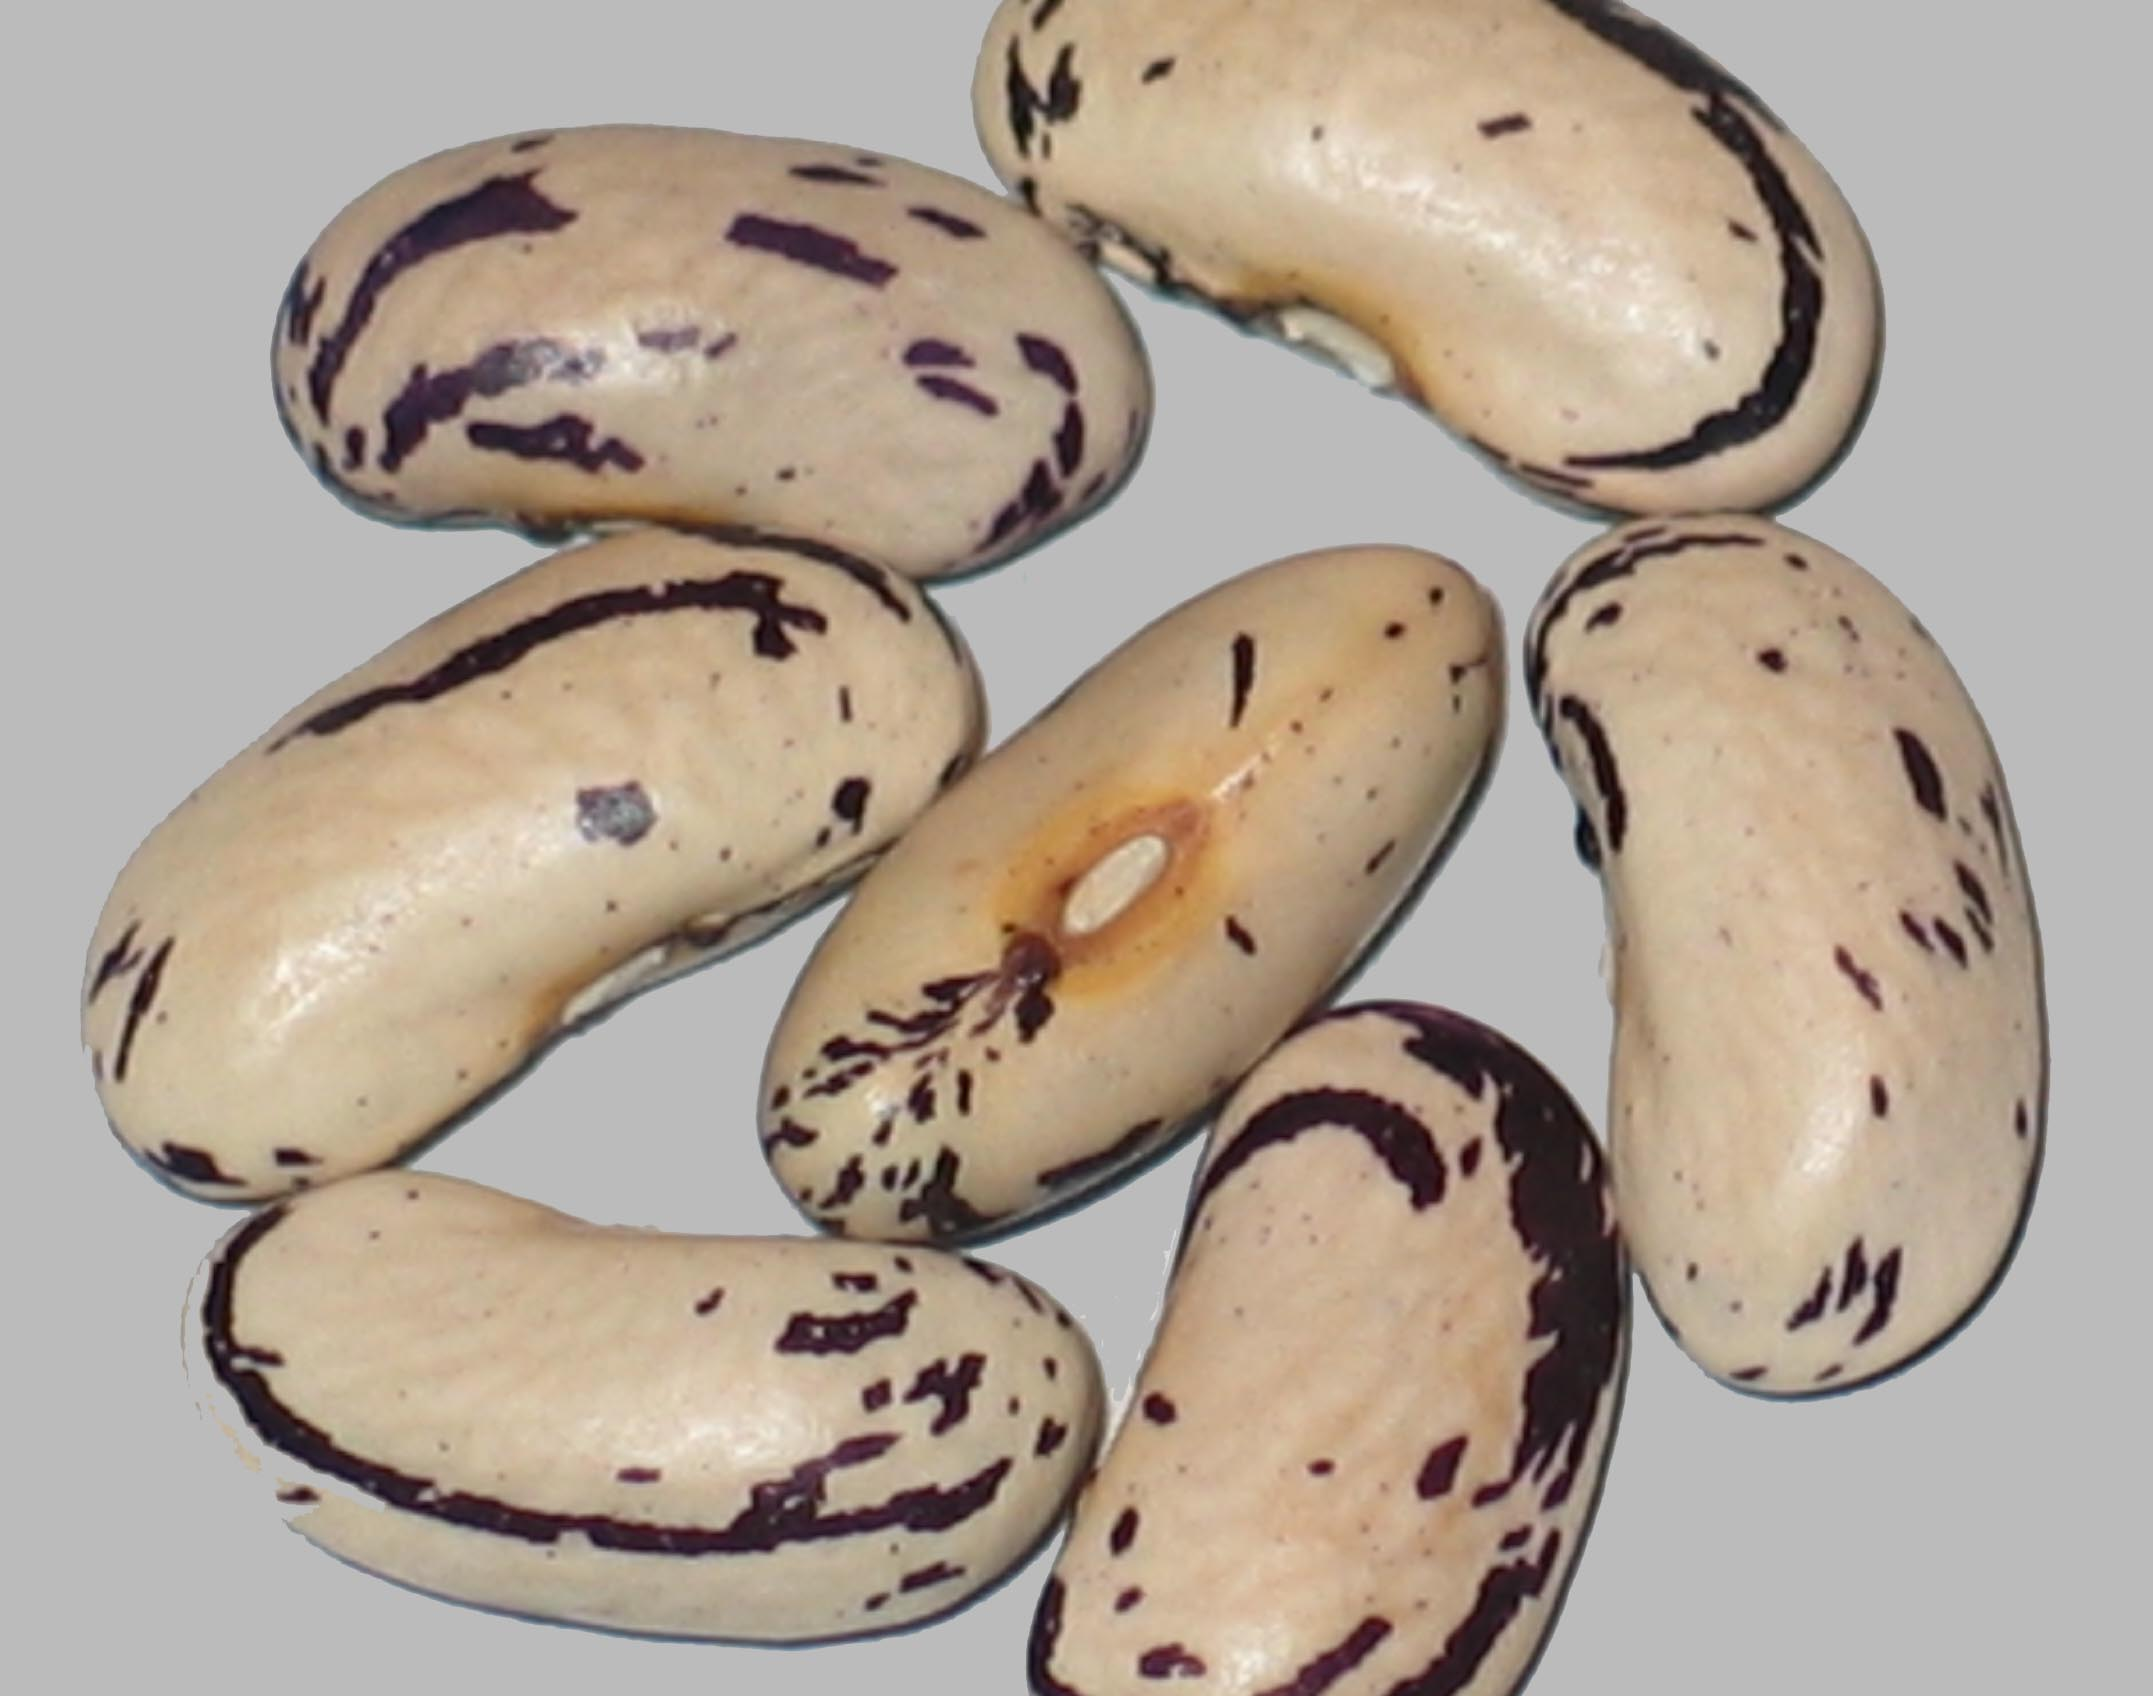 image of Thibodeau Compte Beauce beans